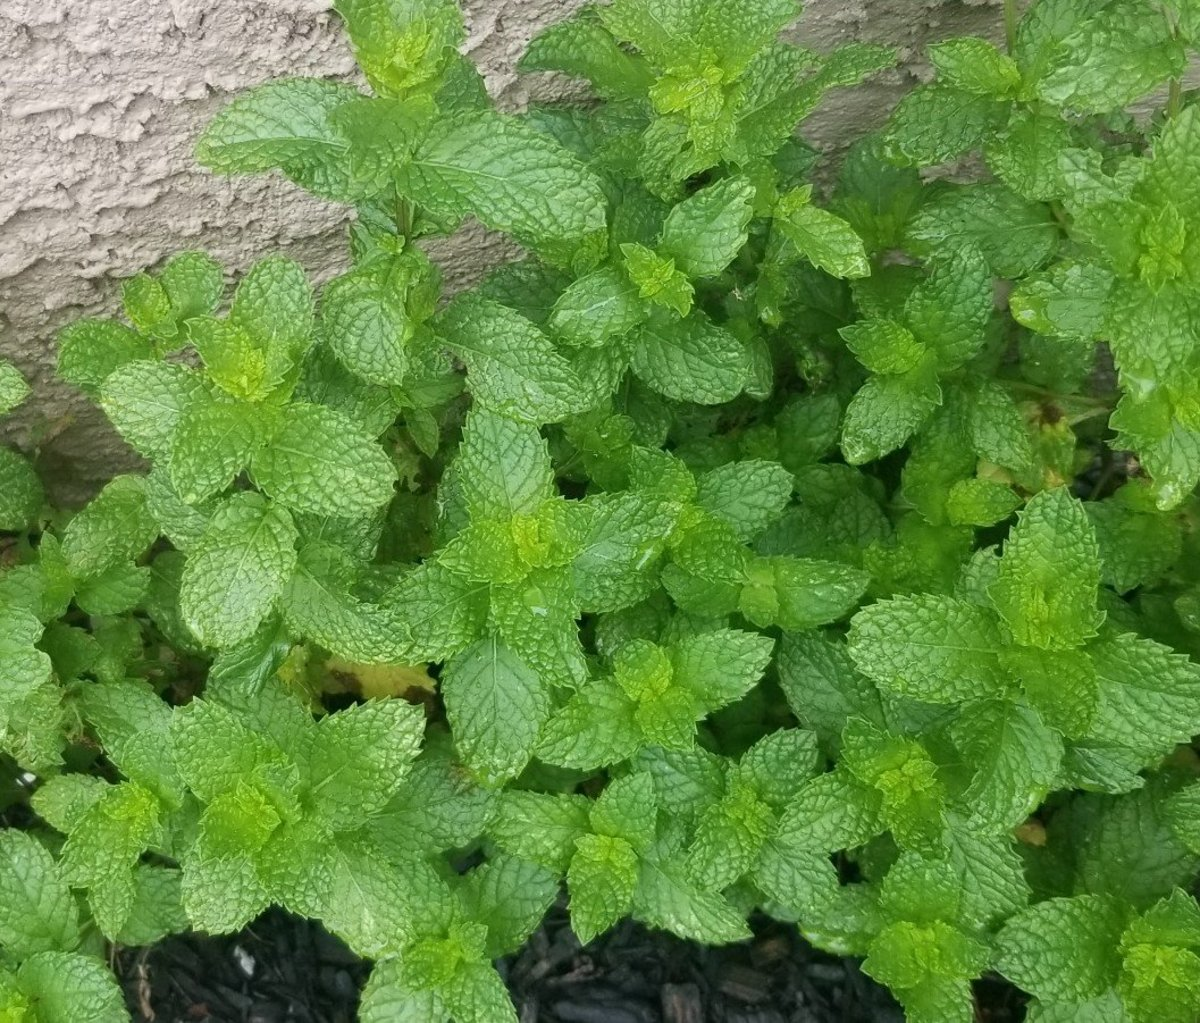 9 Ways to Use Mint Leaves From Your Garden